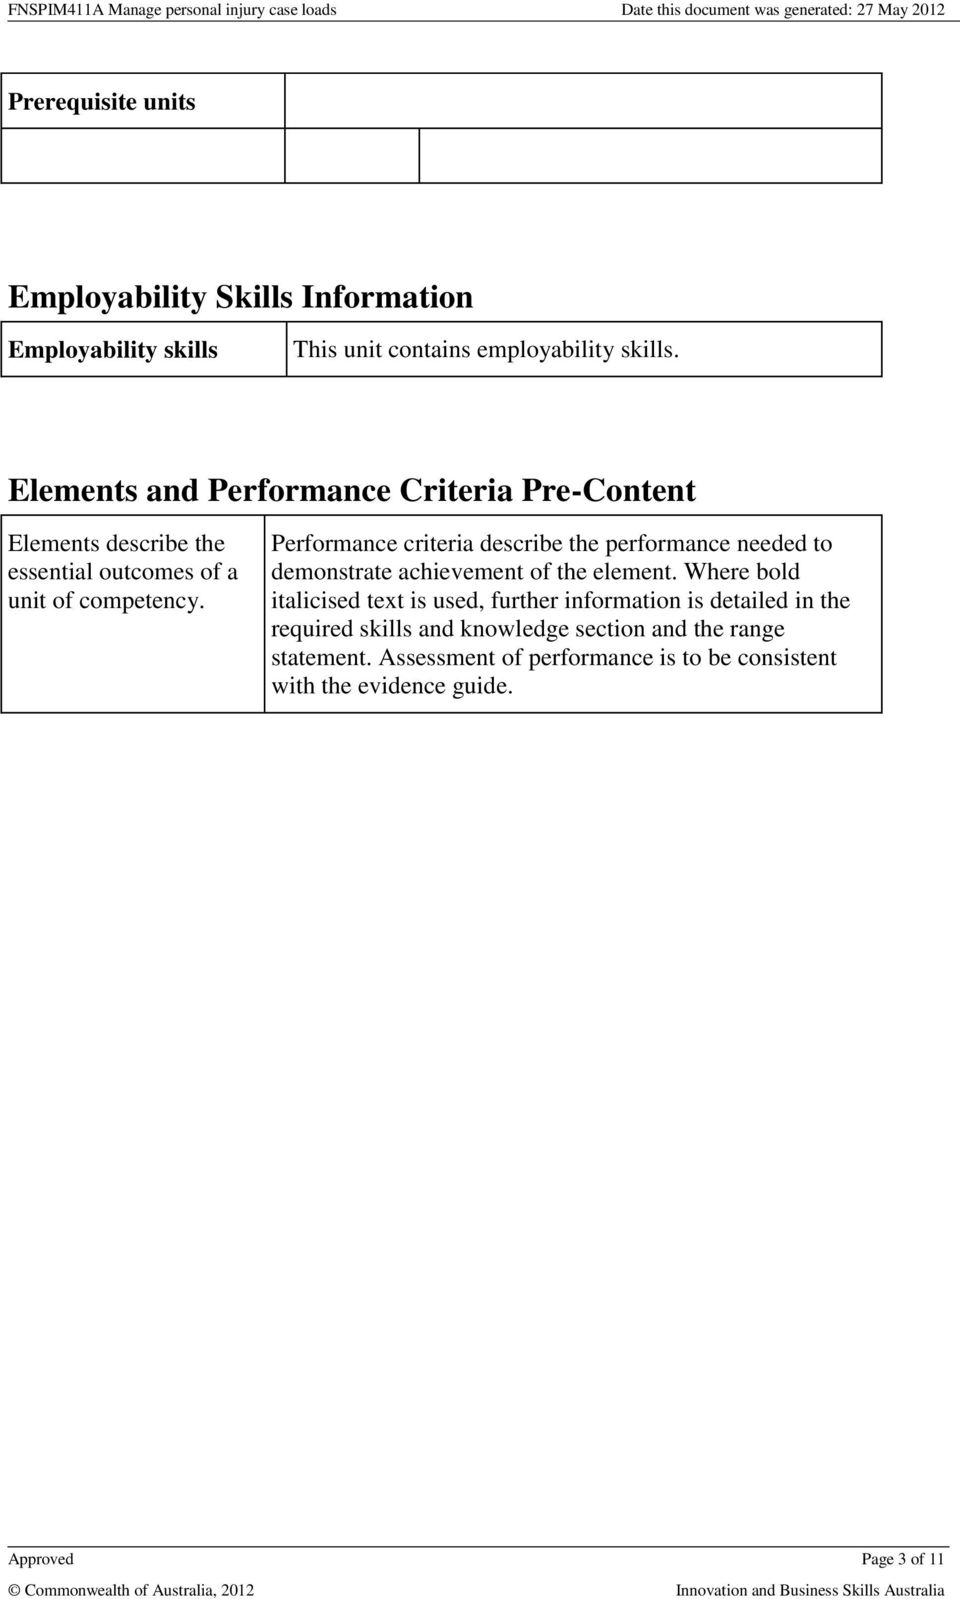 Performance criteria describe the performance needed to demonstrate achievement of the element.